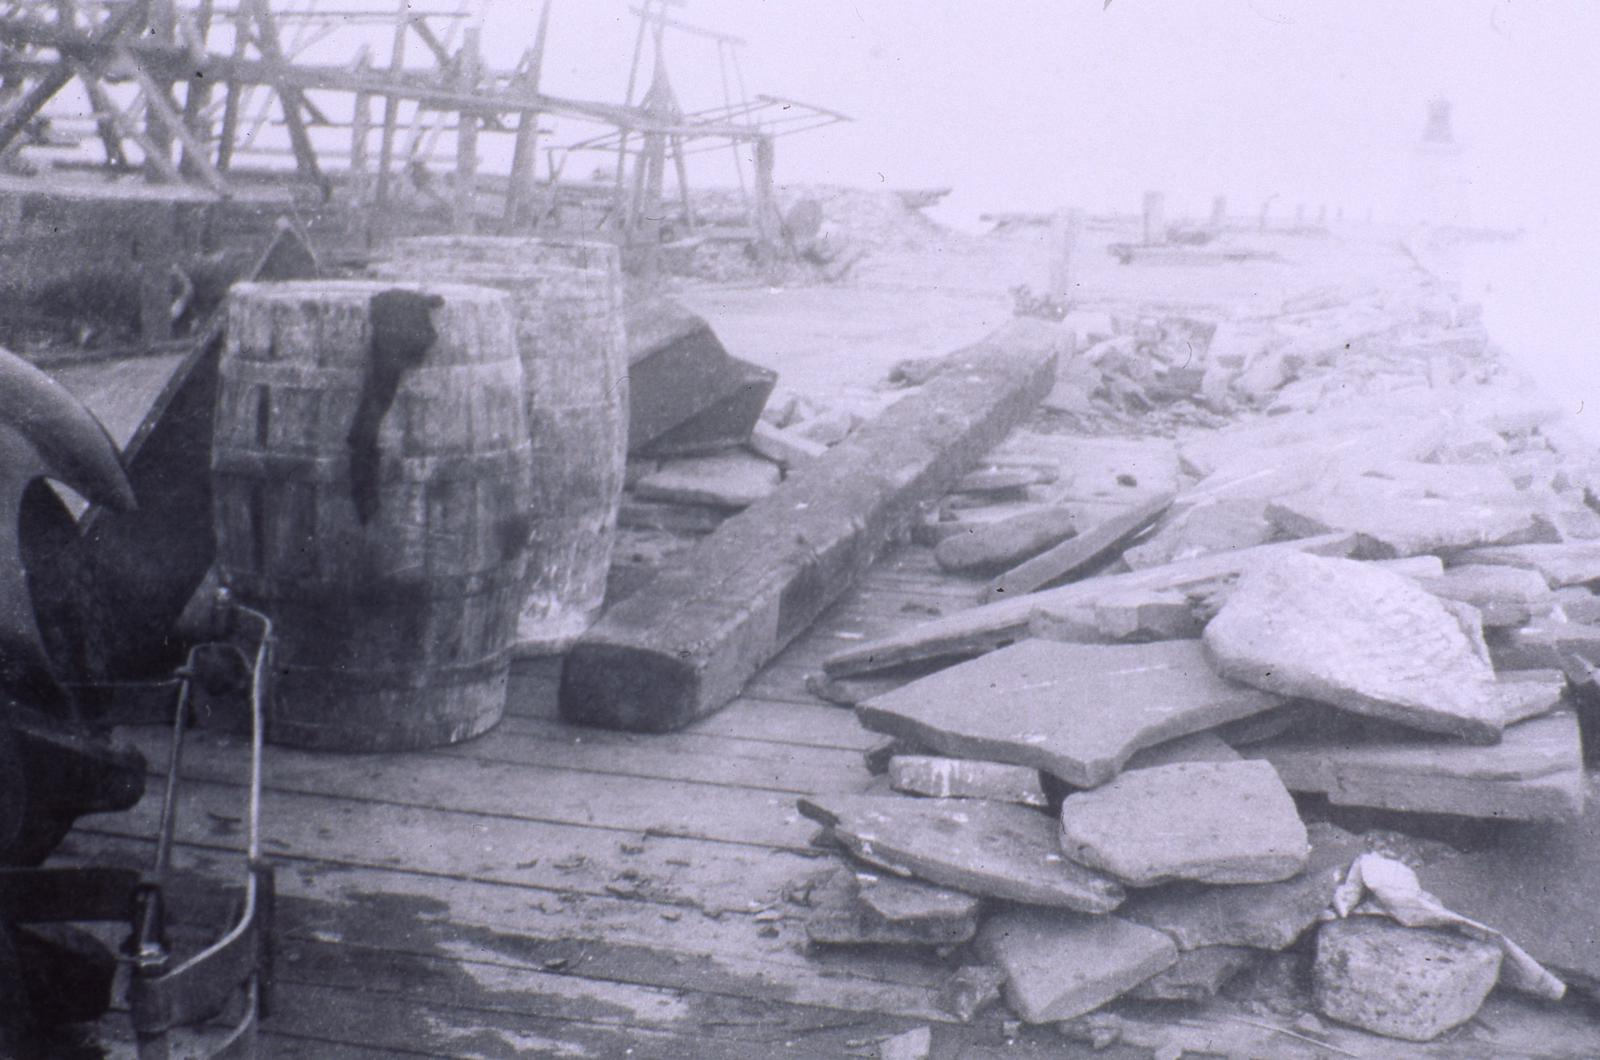 Dundas Shale on Pier (Provided by Bronte Historical Society)